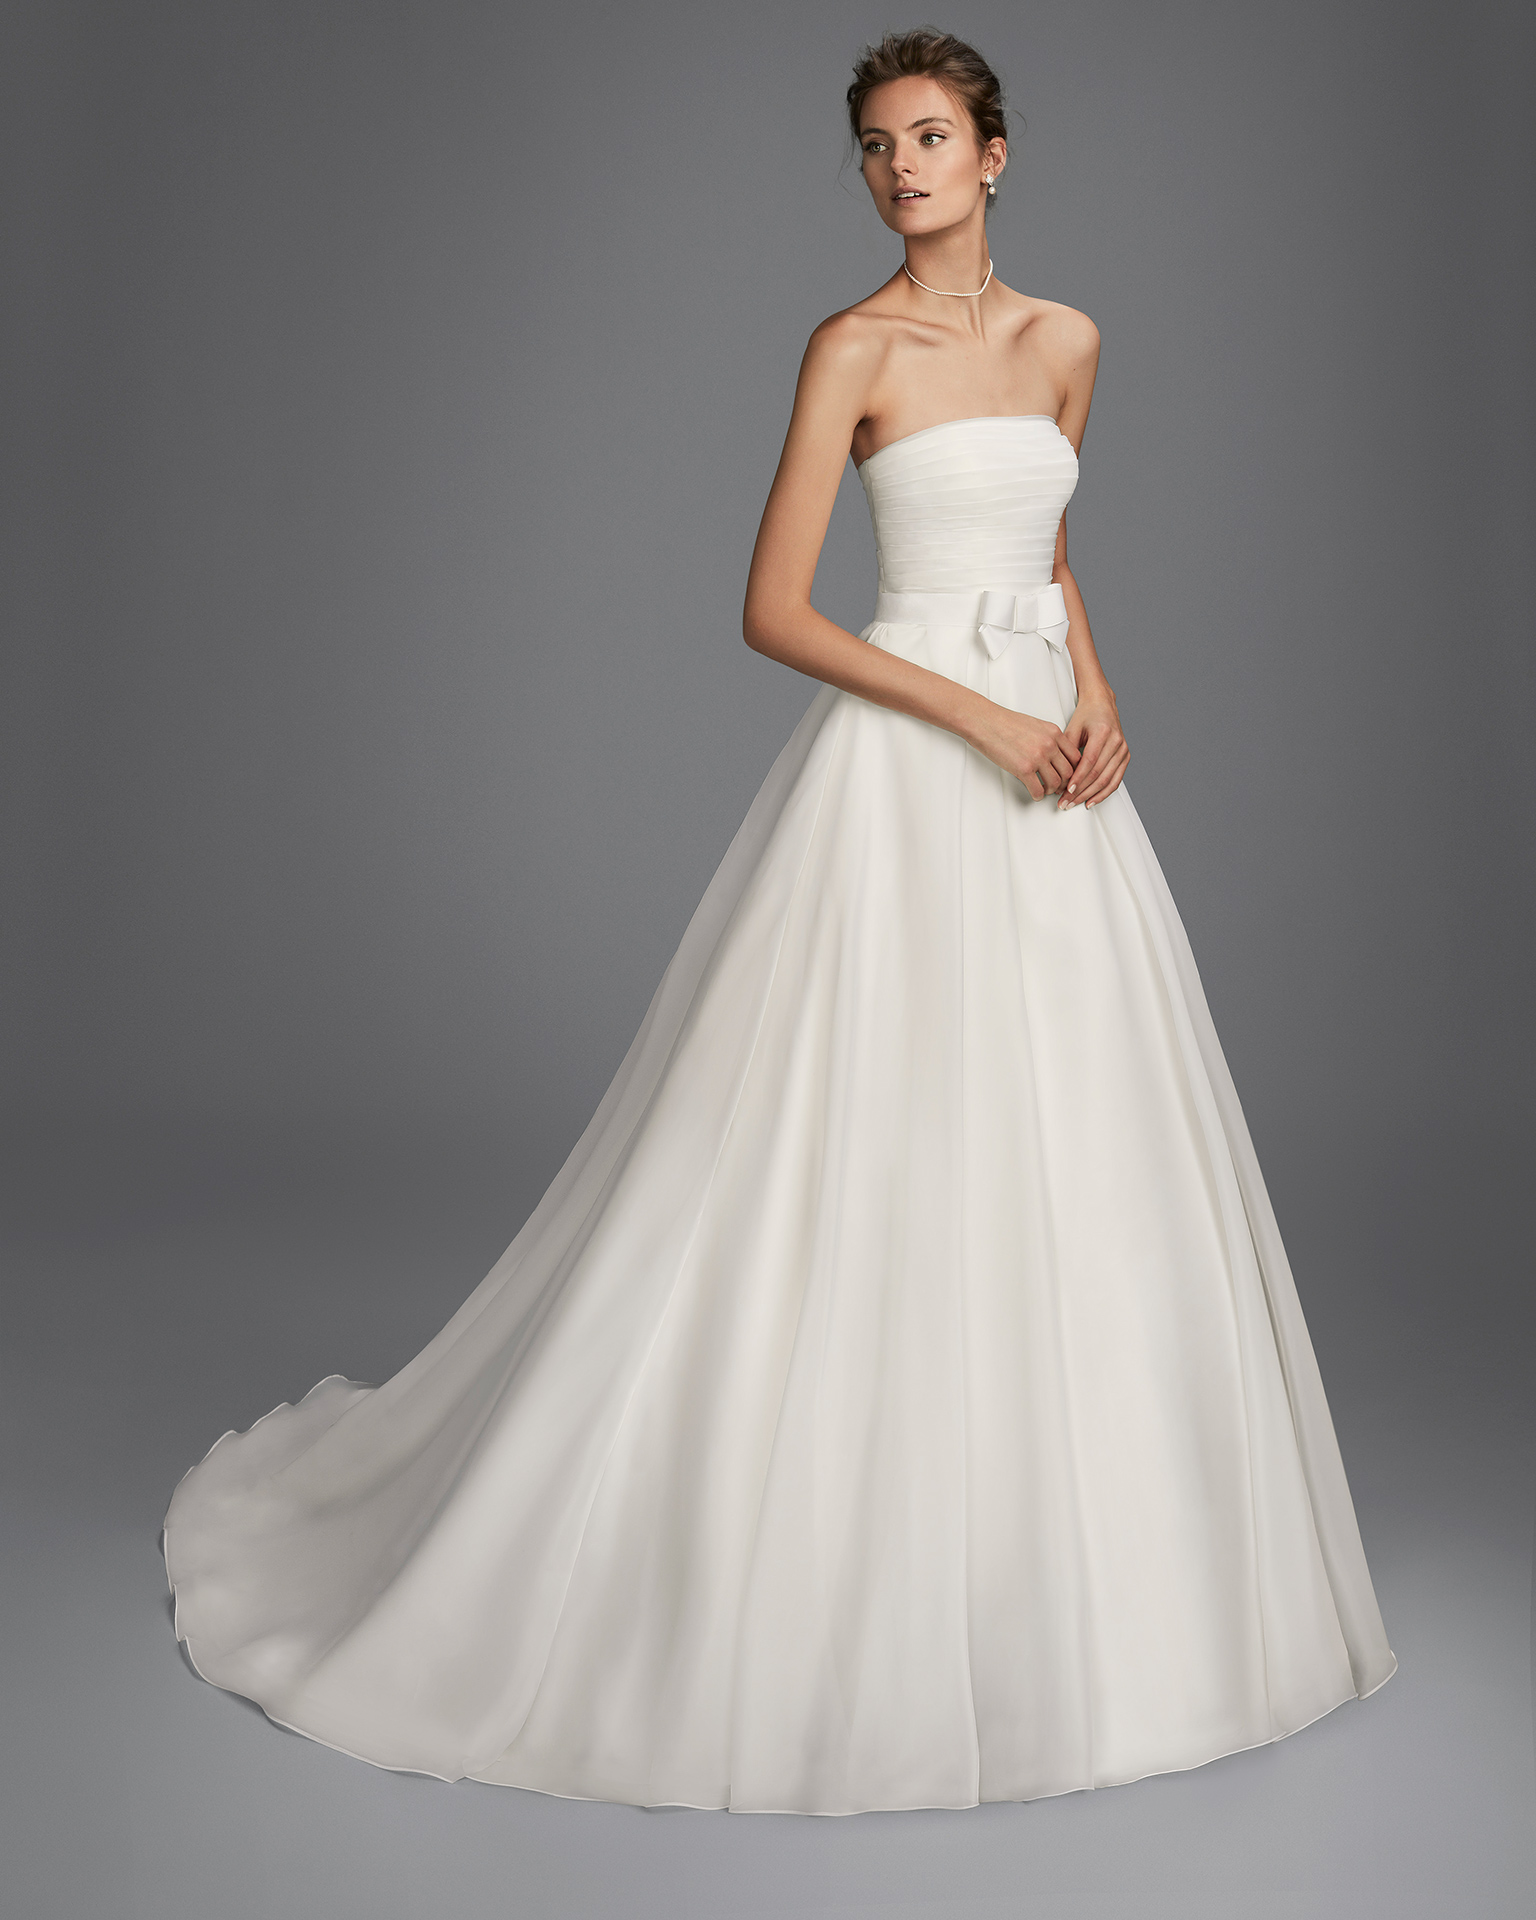 A-line organza strapless wedding dress with bow at waist.